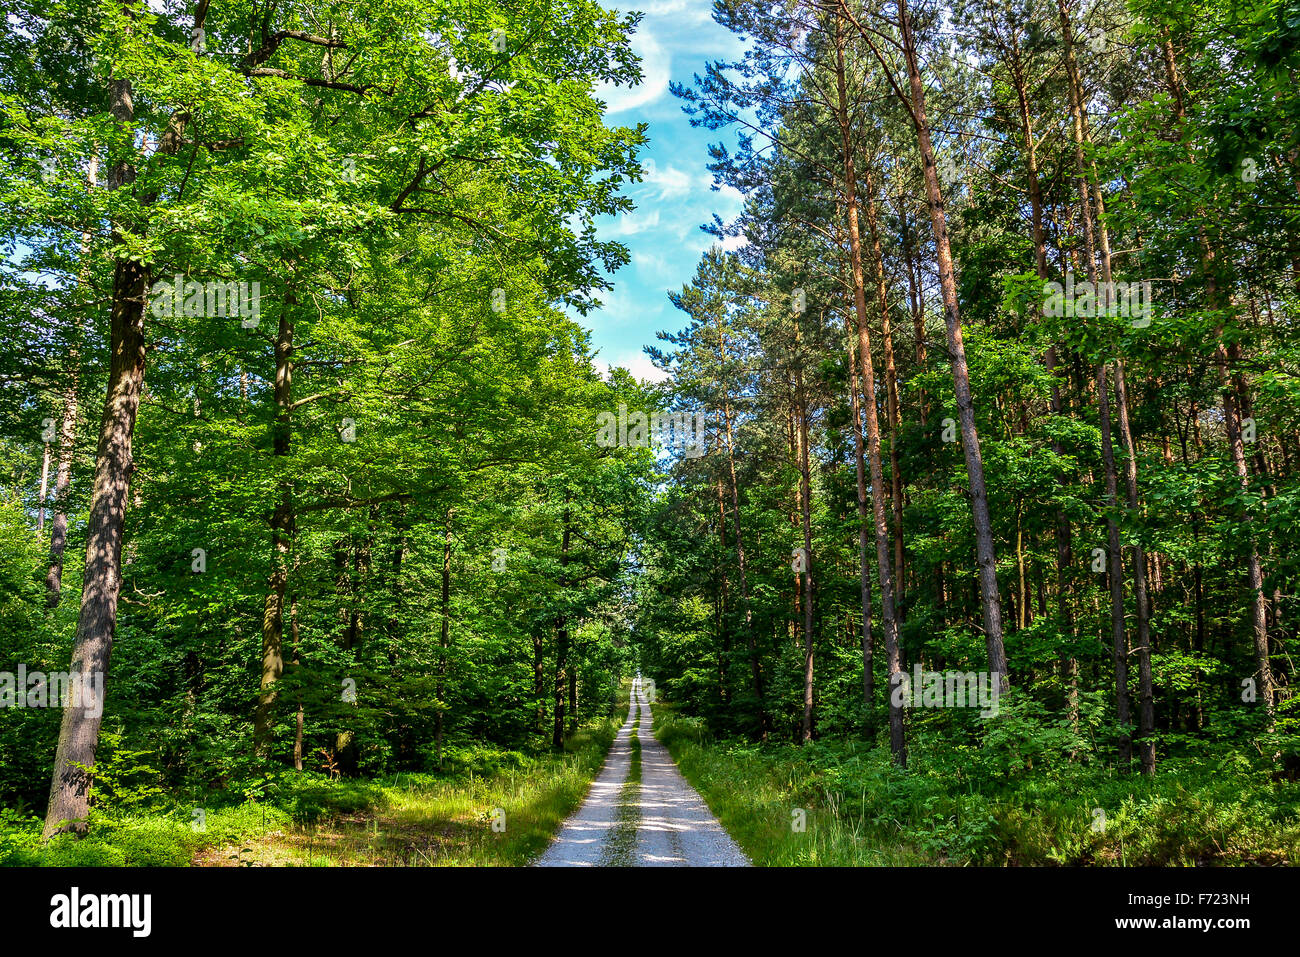 Path Canopy Stock Photos & Path Canopy Stock Images